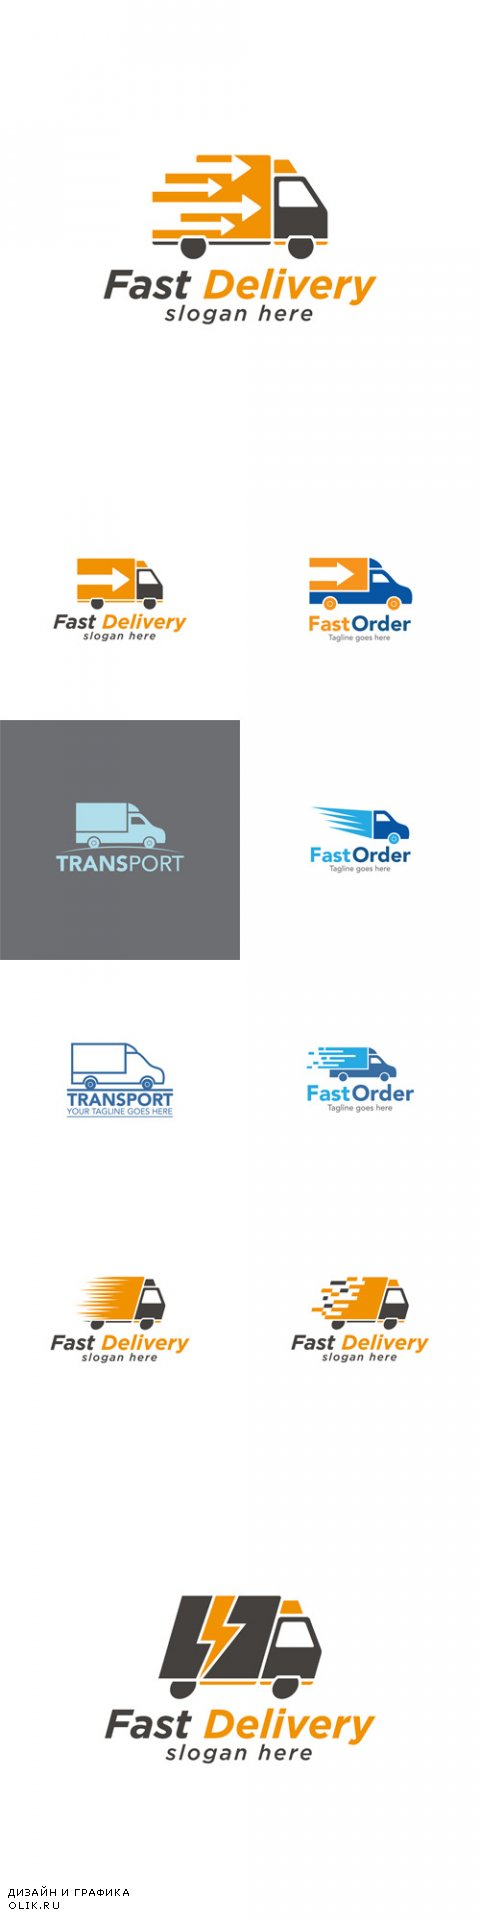 Vector Truck Fast Delivery Logo Design